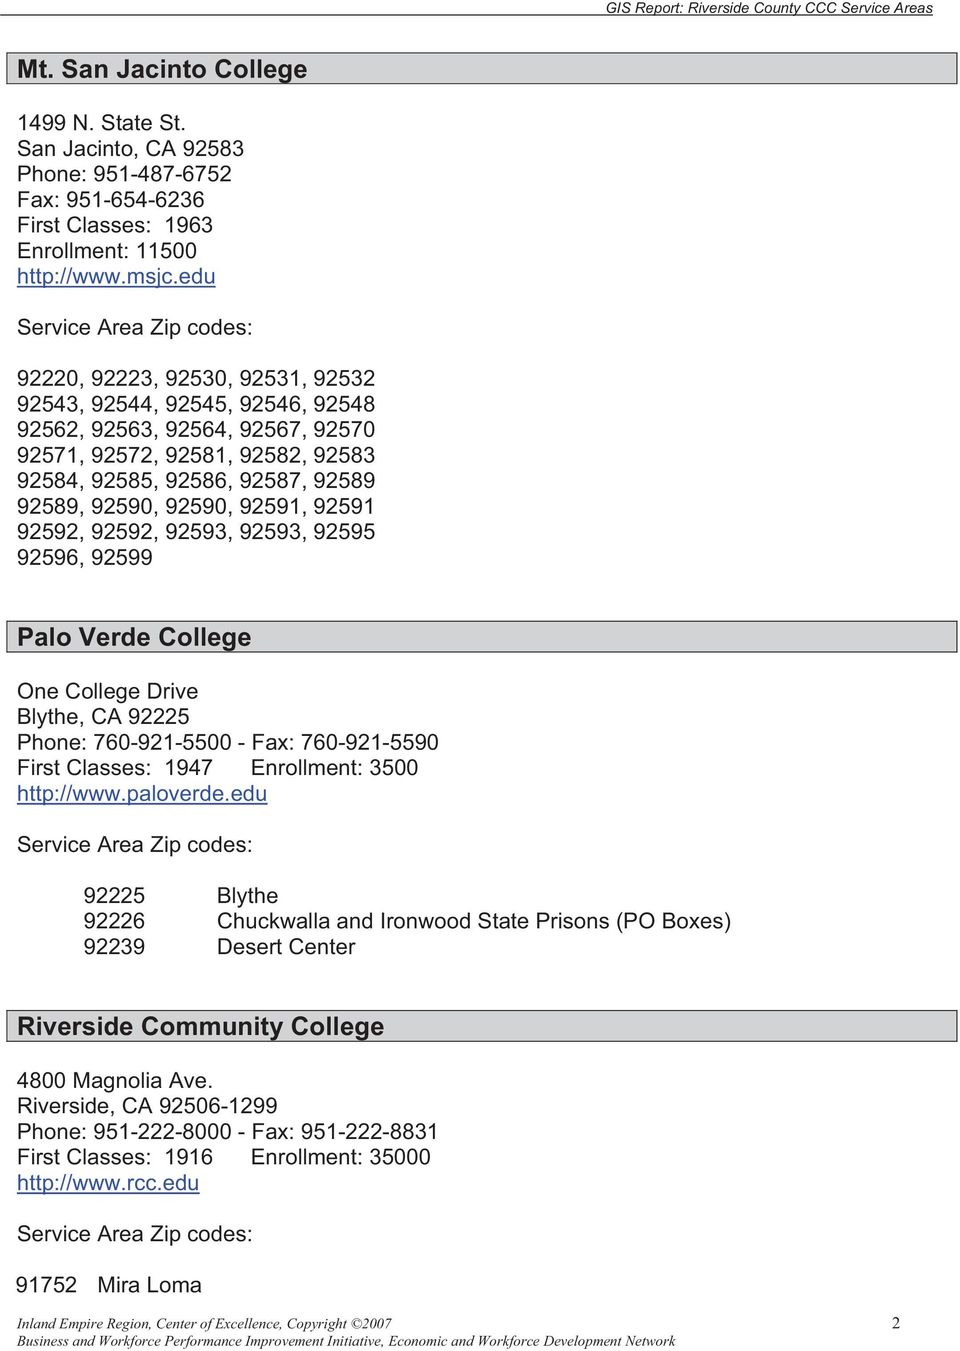 92591, 92591 92592, 92592, 92593, 92593, 92595 92596, 92599 Palo Verde College One College Drive Blythe, CA 92225 Phone: 760-921-5500 - Fax: 760-921-5590 First Classes: 1947 Enrollment: 3500